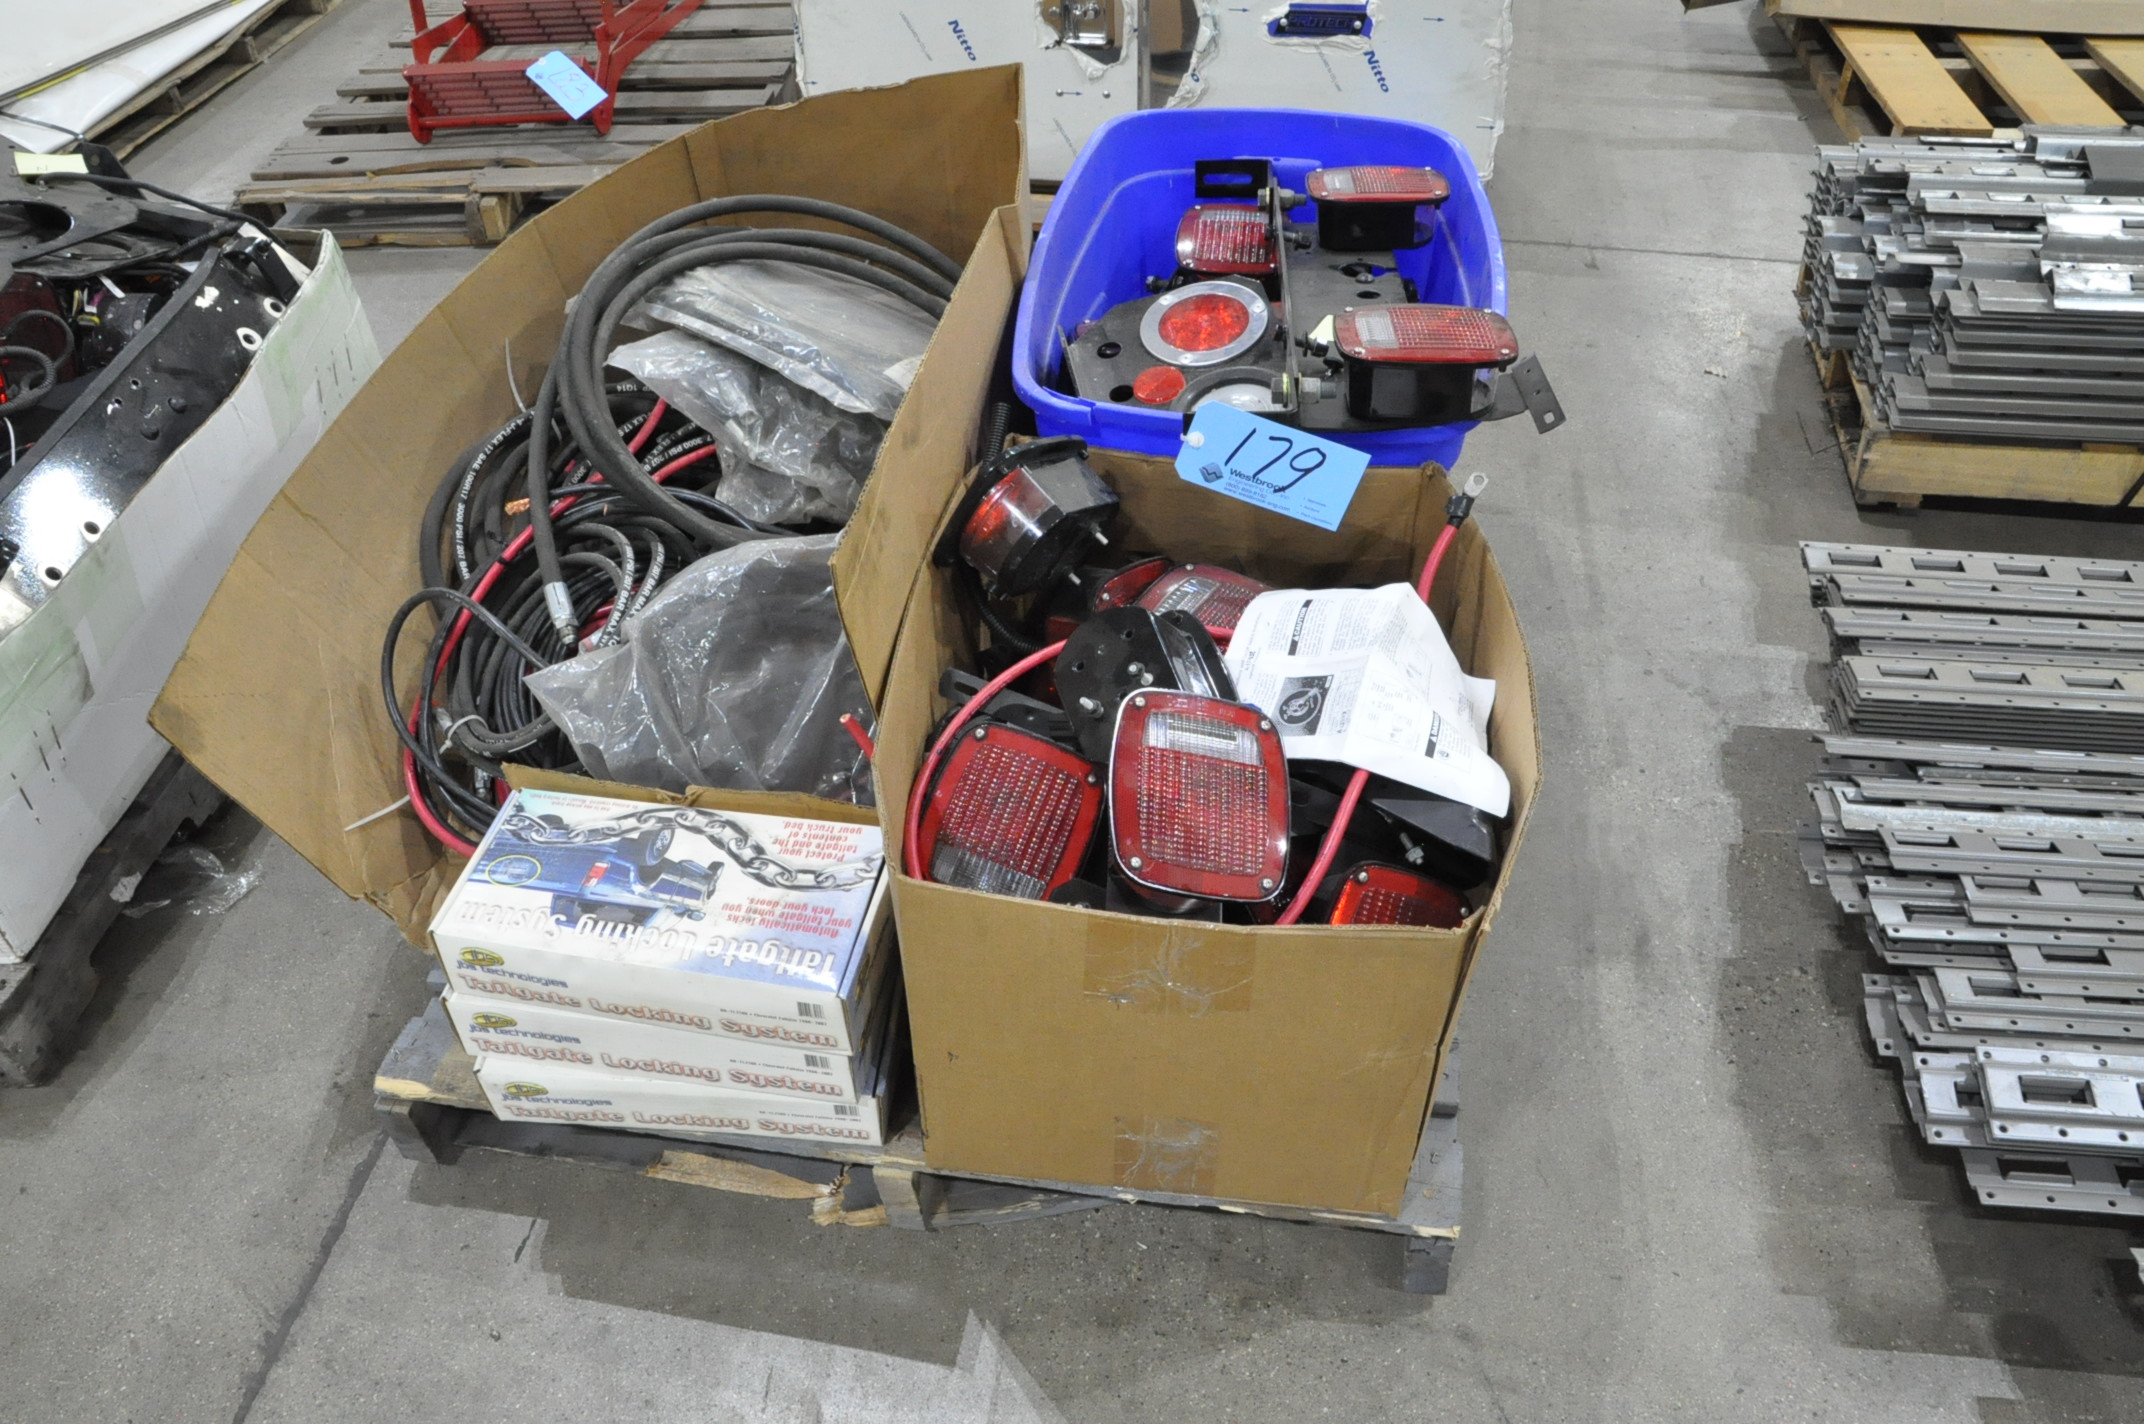 Lot-Vehicle or Trailer Lighting and Wiring on (1) Pallet